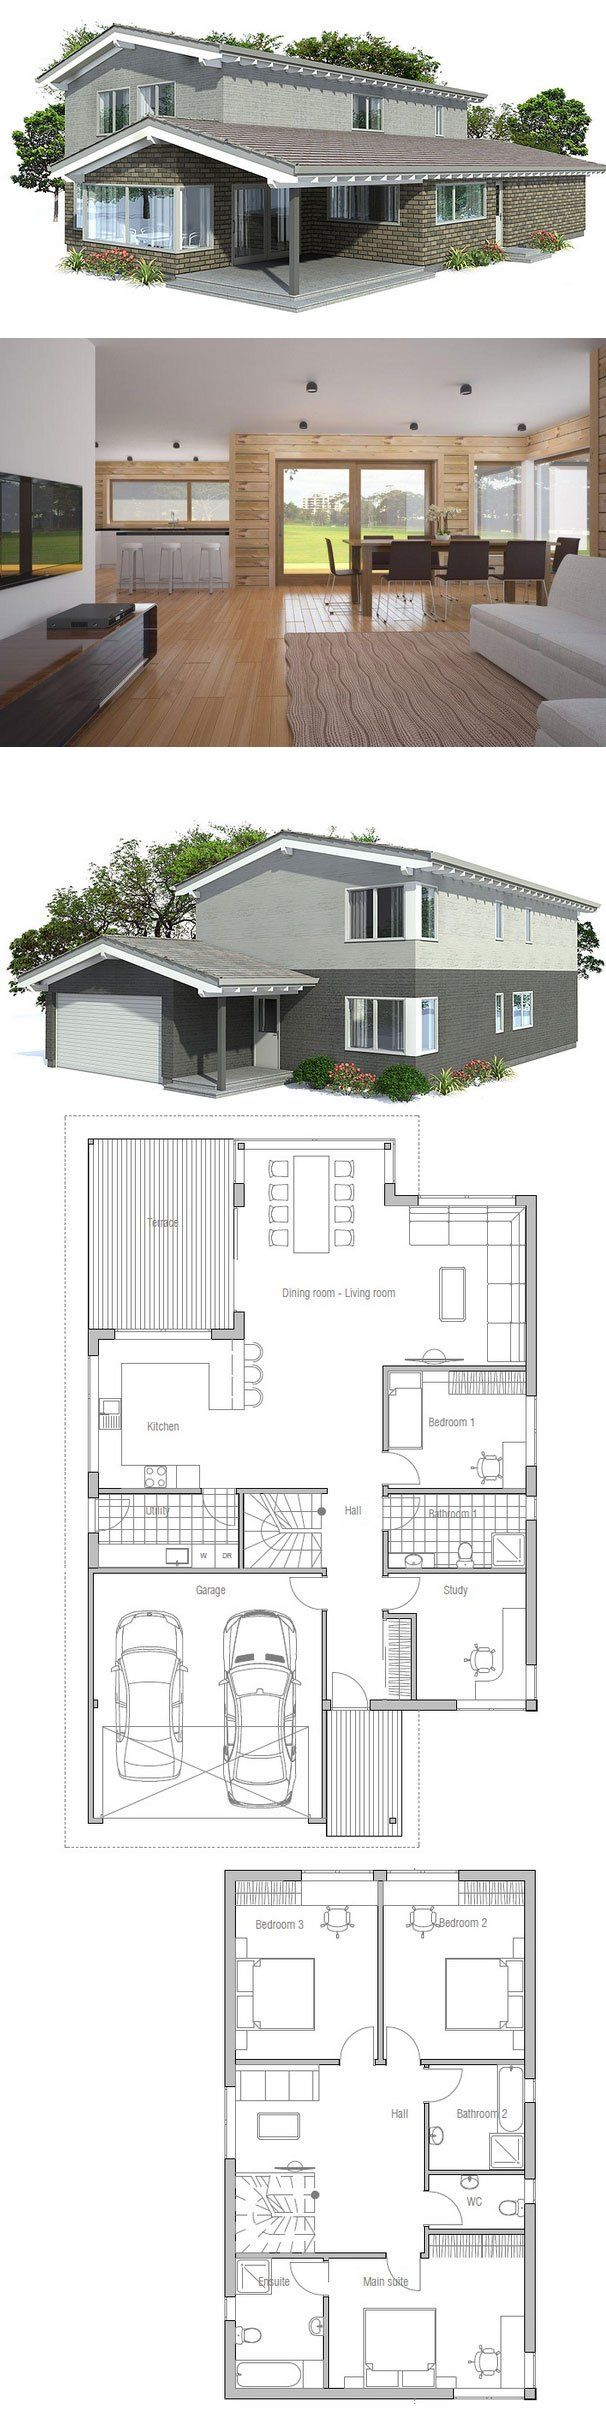 22 best house ideas images on pinterest architecture modern large modern house plan with double garage floor plan from concepthome com